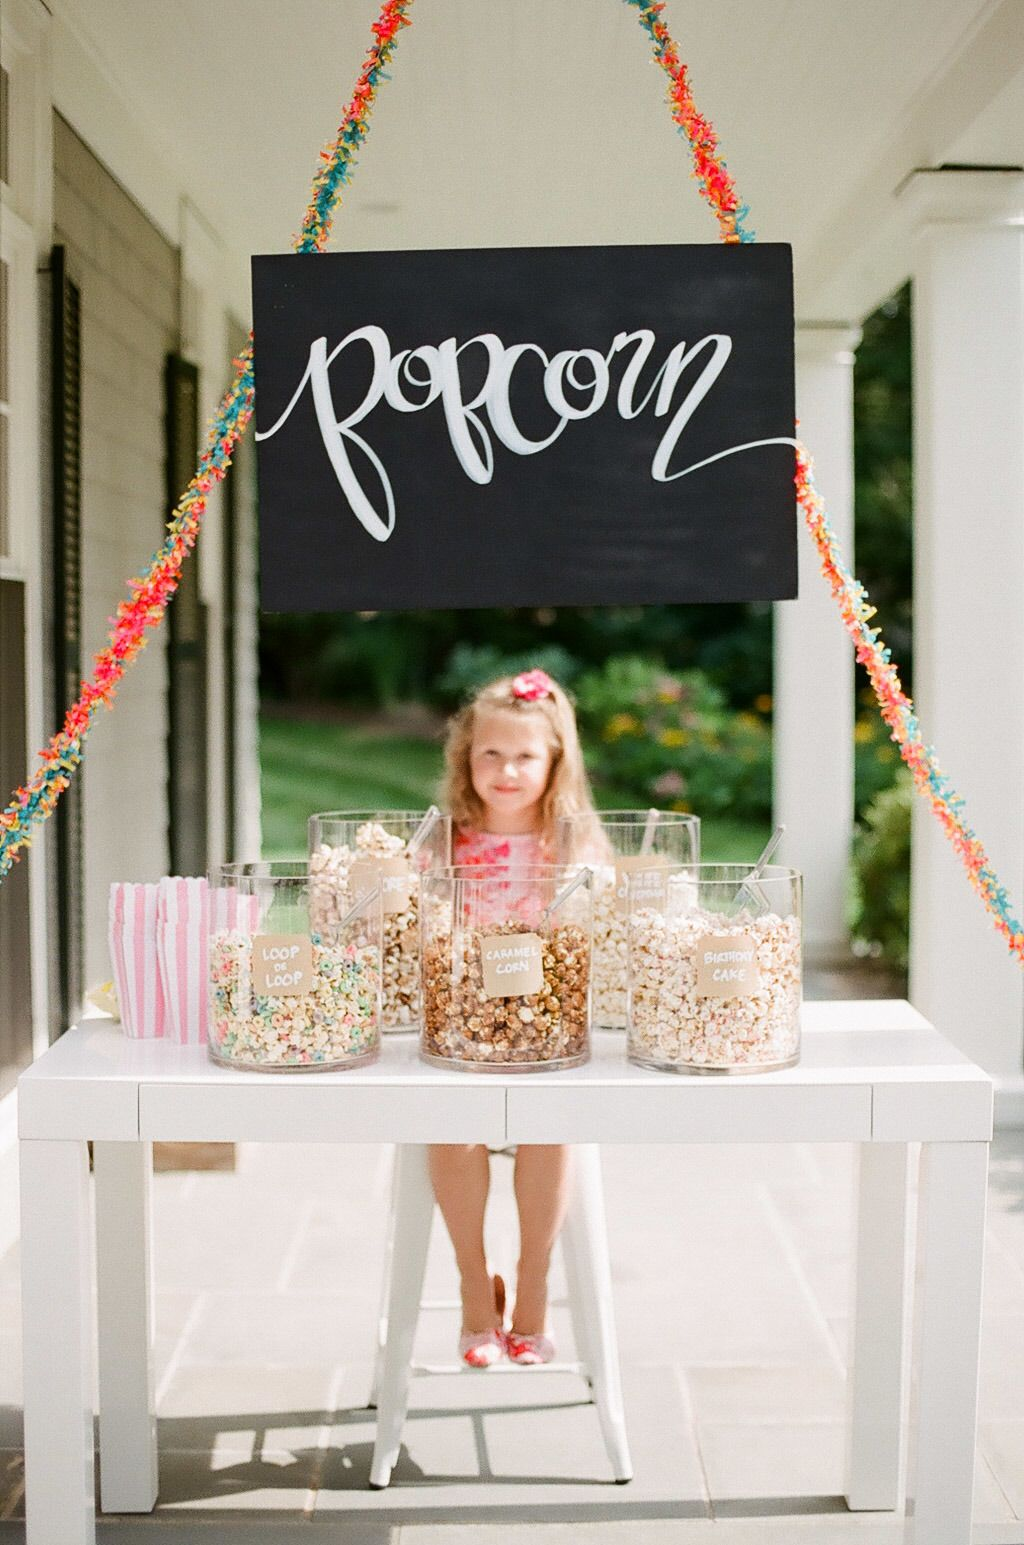 Popcorn bar for a party. How cute!